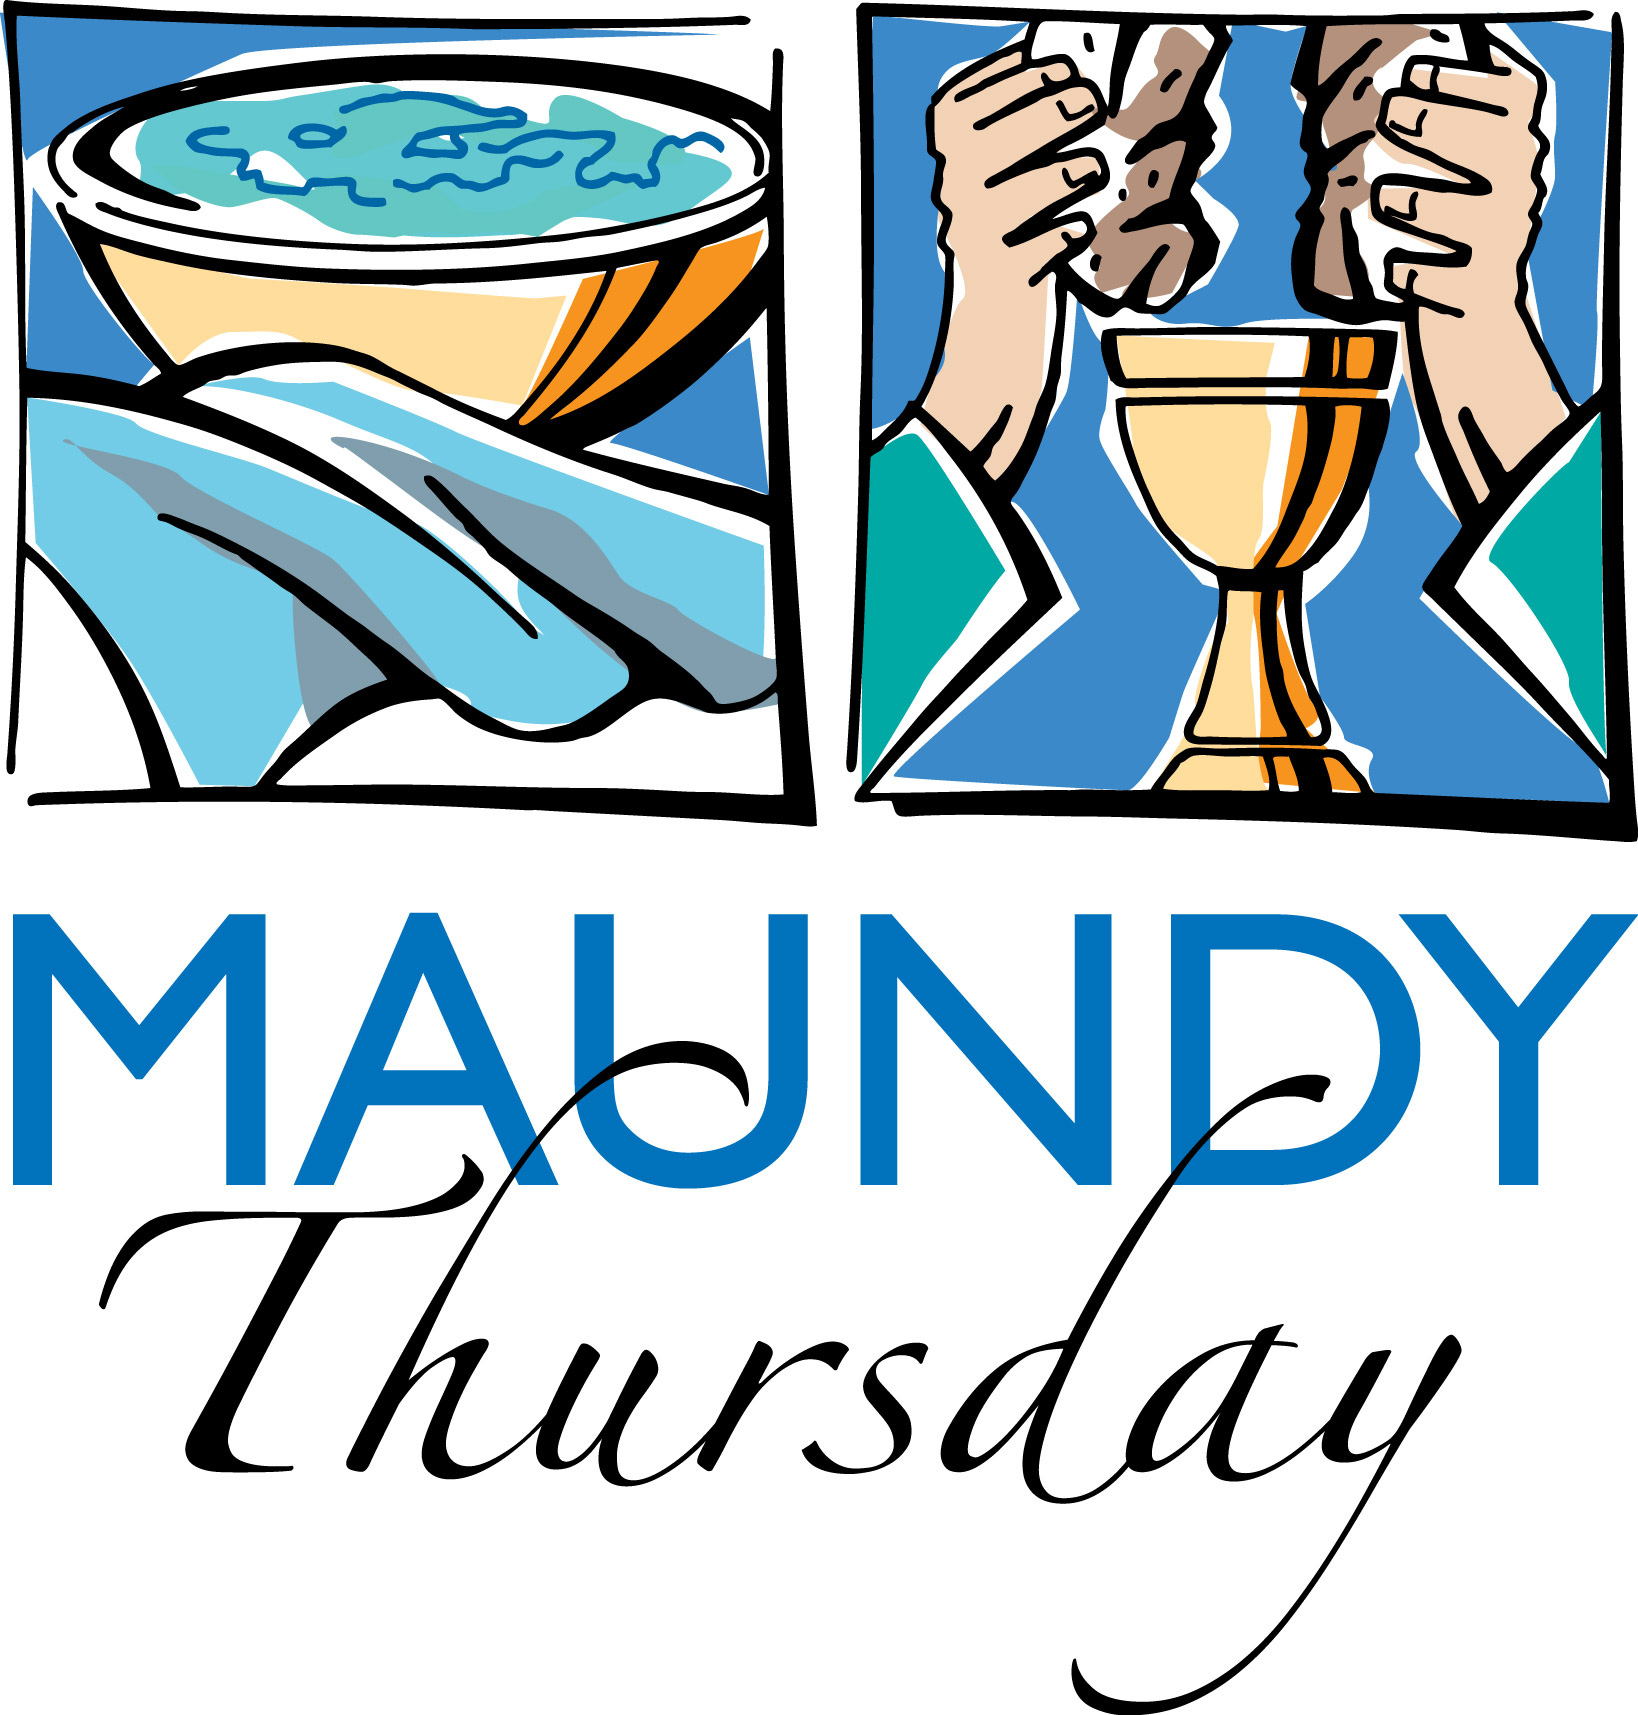 Maundy Thursday Clipart Free.